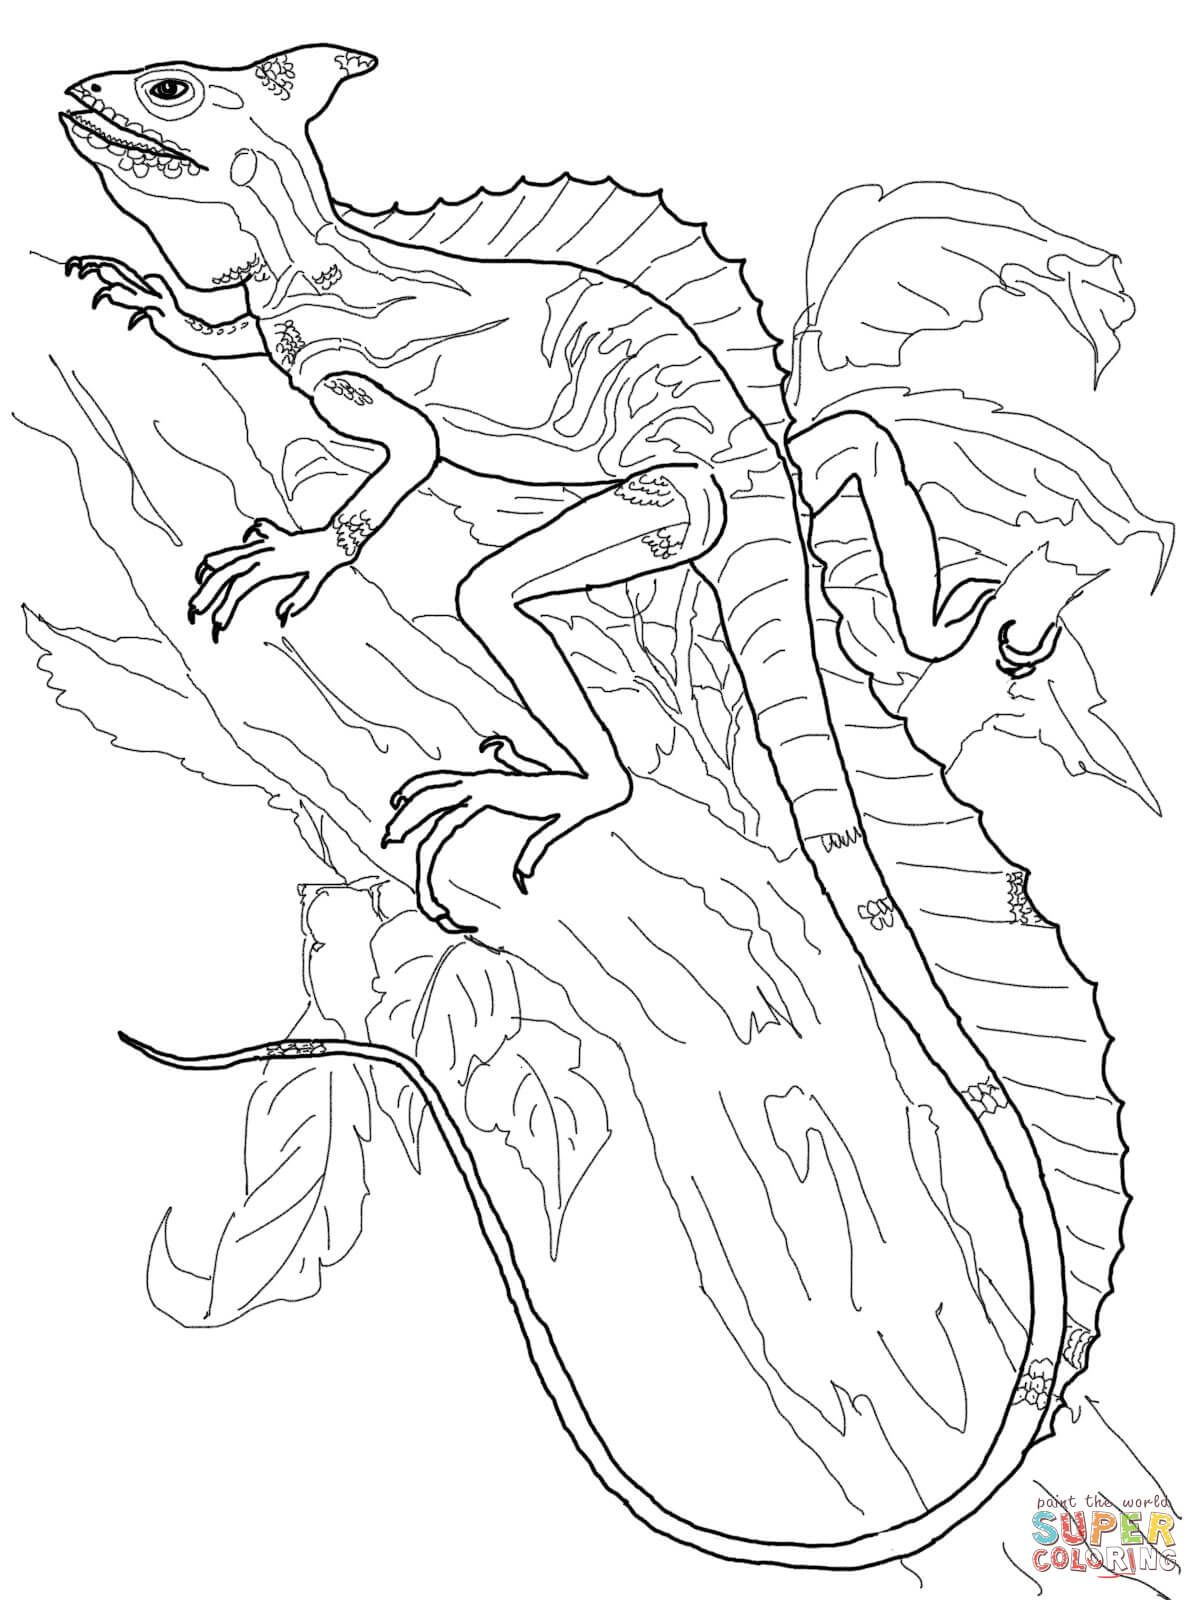 Basilisk Lizard Coloring Page Free Printable Coloring Pages